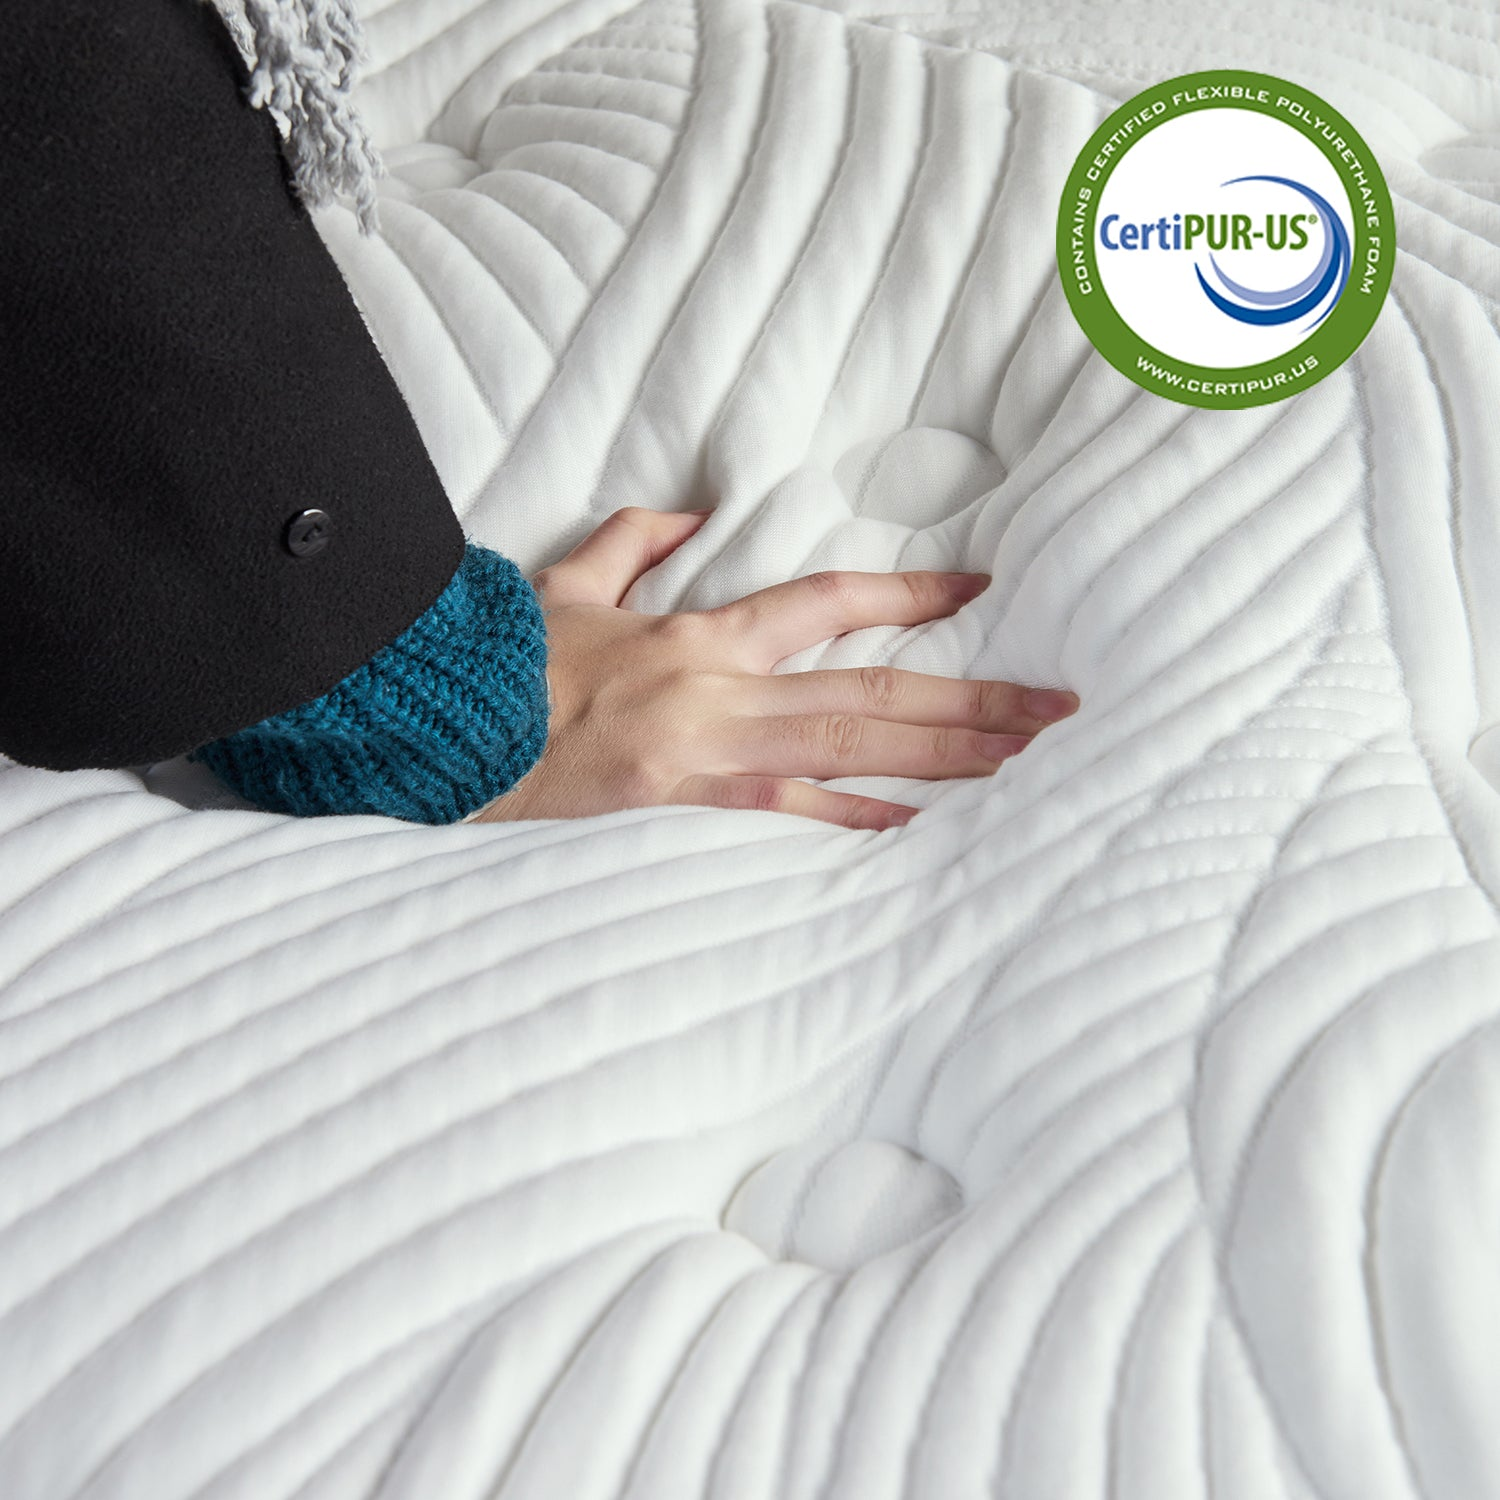 Sweet Night Mattress Is Non-toxic And Healthy